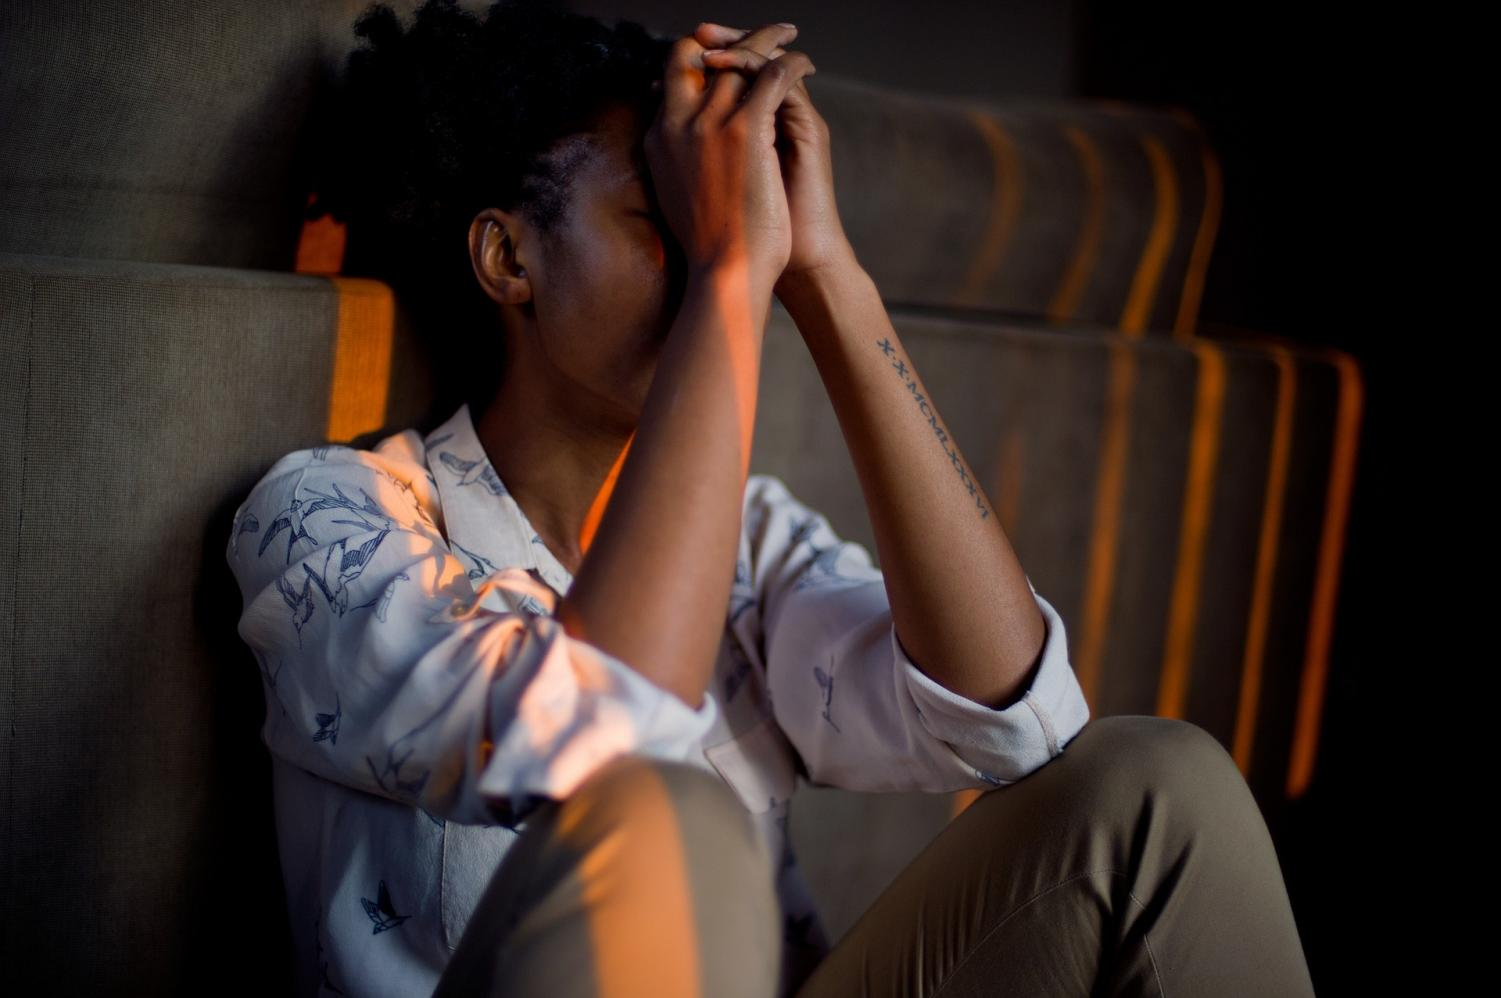 Stress and anxiety are common experiences for students on college campus, but there are steps you can take to benefit your mental health.